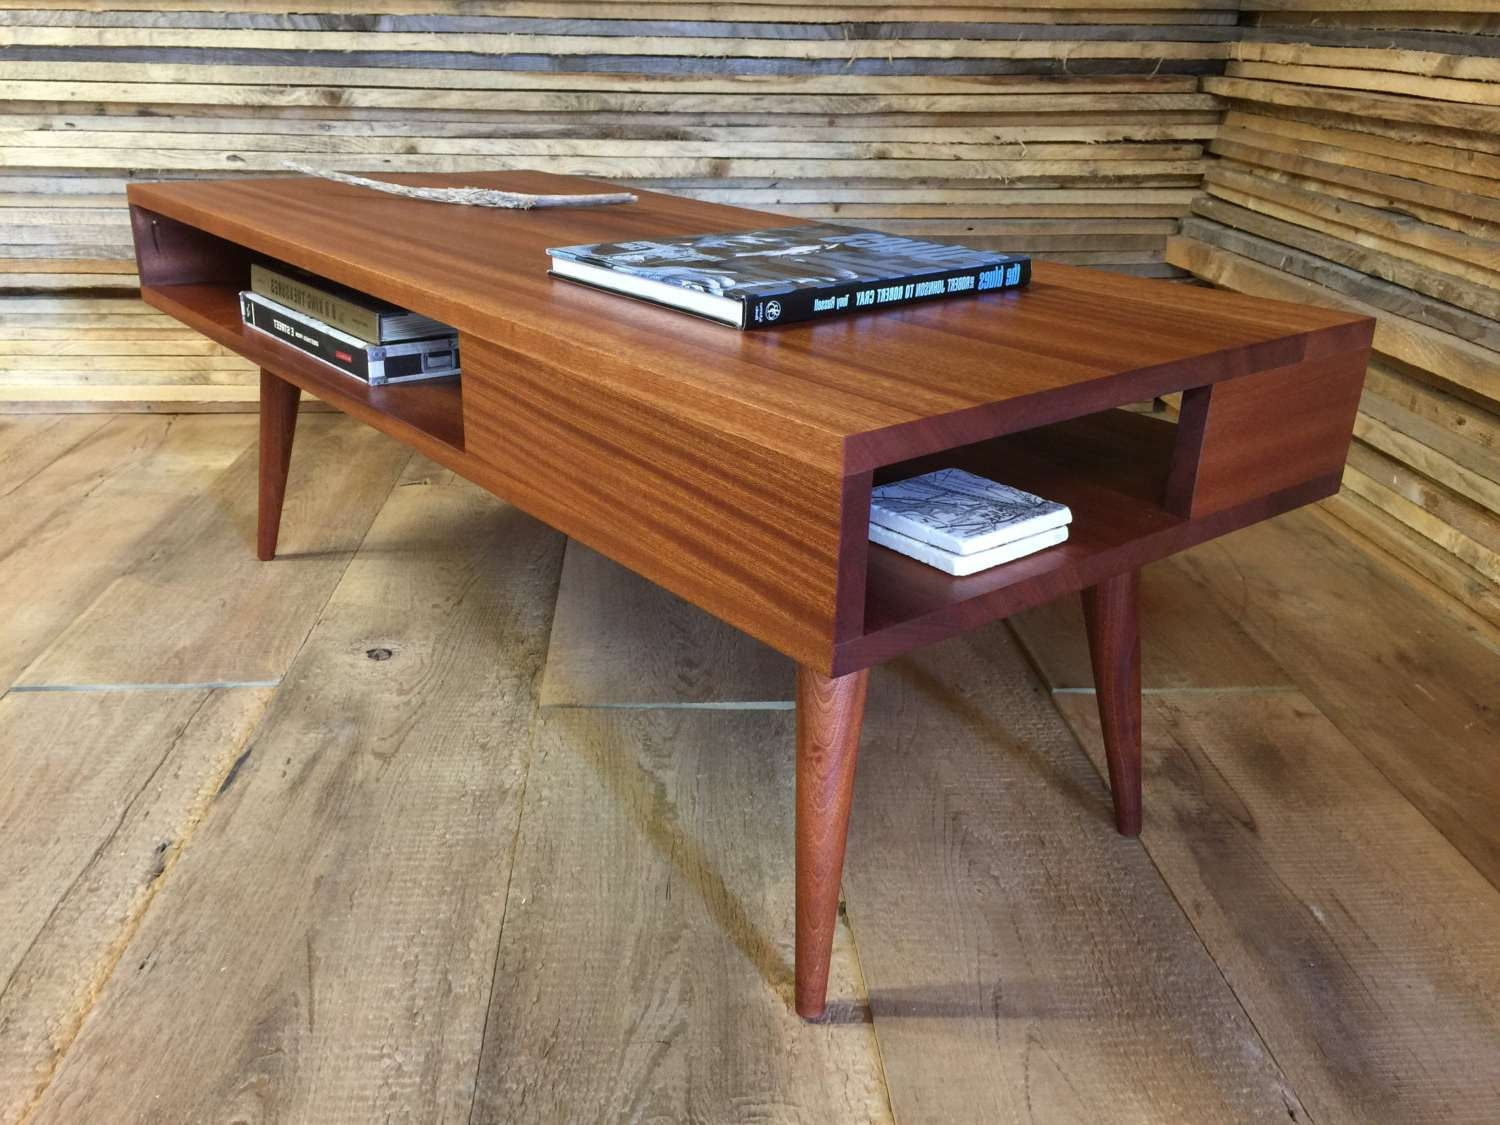 Thin Man Mid Century Modern Coffee Table With Storage Intended For Most Recently Released Modern Coffee Tables With Storage (View 17 of 20)